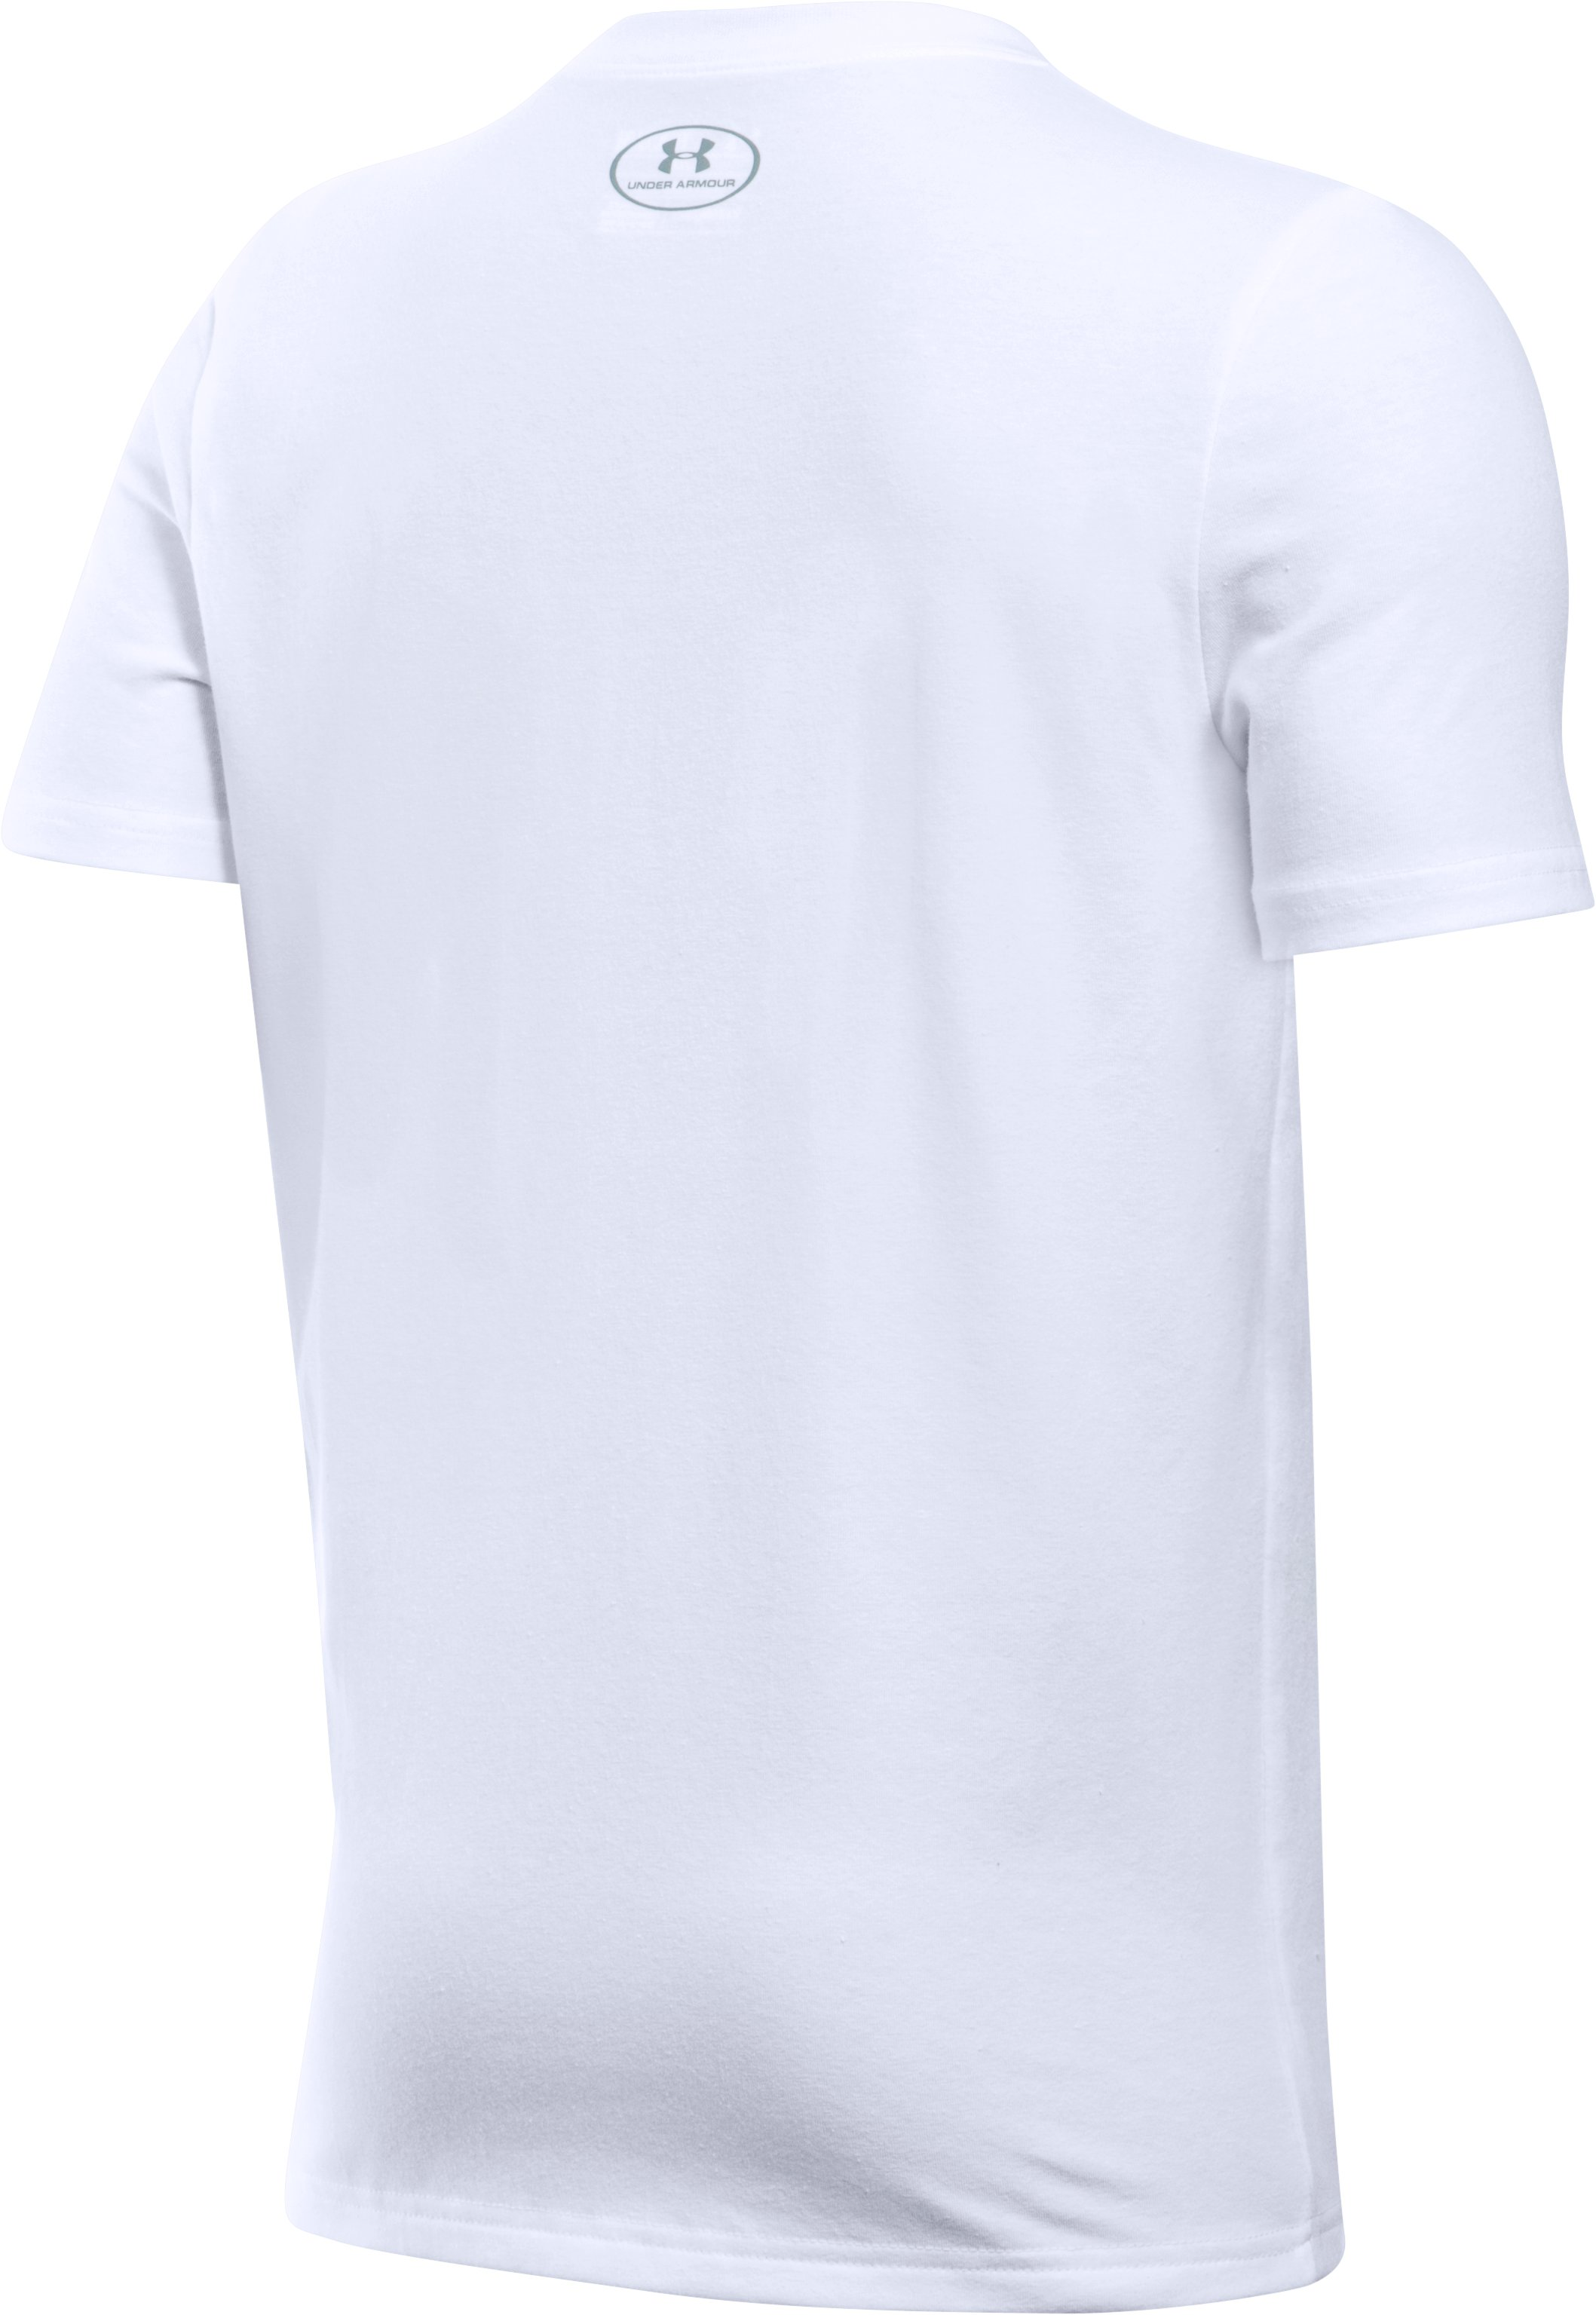 Boys' SC30 Lava 3 T-Shirt, White,